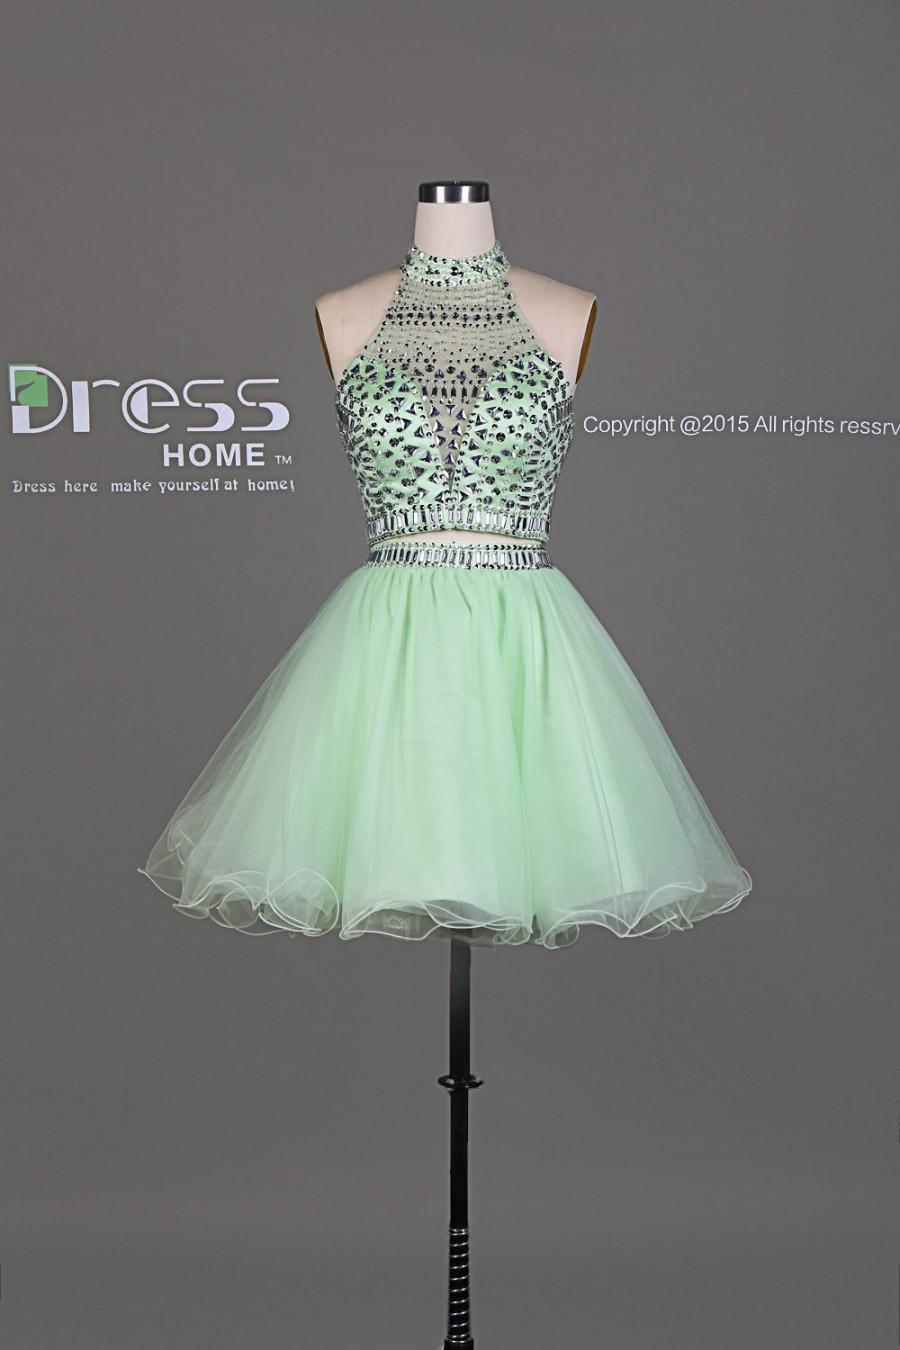 Wedding - 2015 New Design Mint Beading Rhinestone 2 Piece Party Dress/Short Organza Homecoming Dress/Sparkly 2 Piece Prom Dress/Short Dress DH435